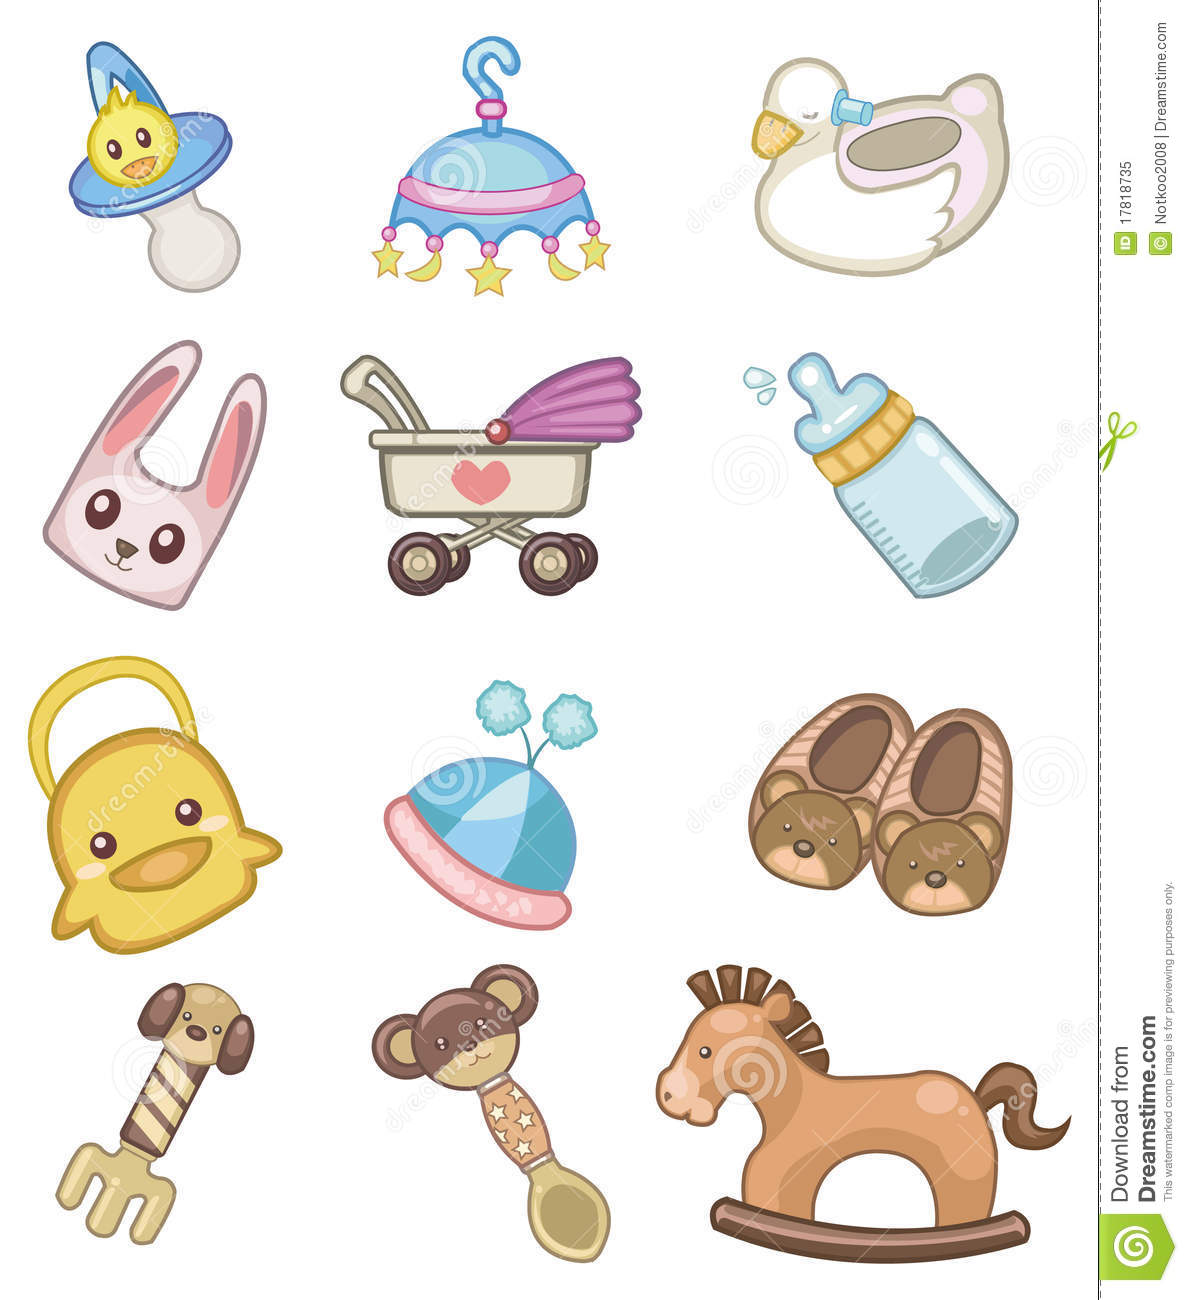 Cartoon Baby Icon Royalty Free Stock Photo  Image: 17818735